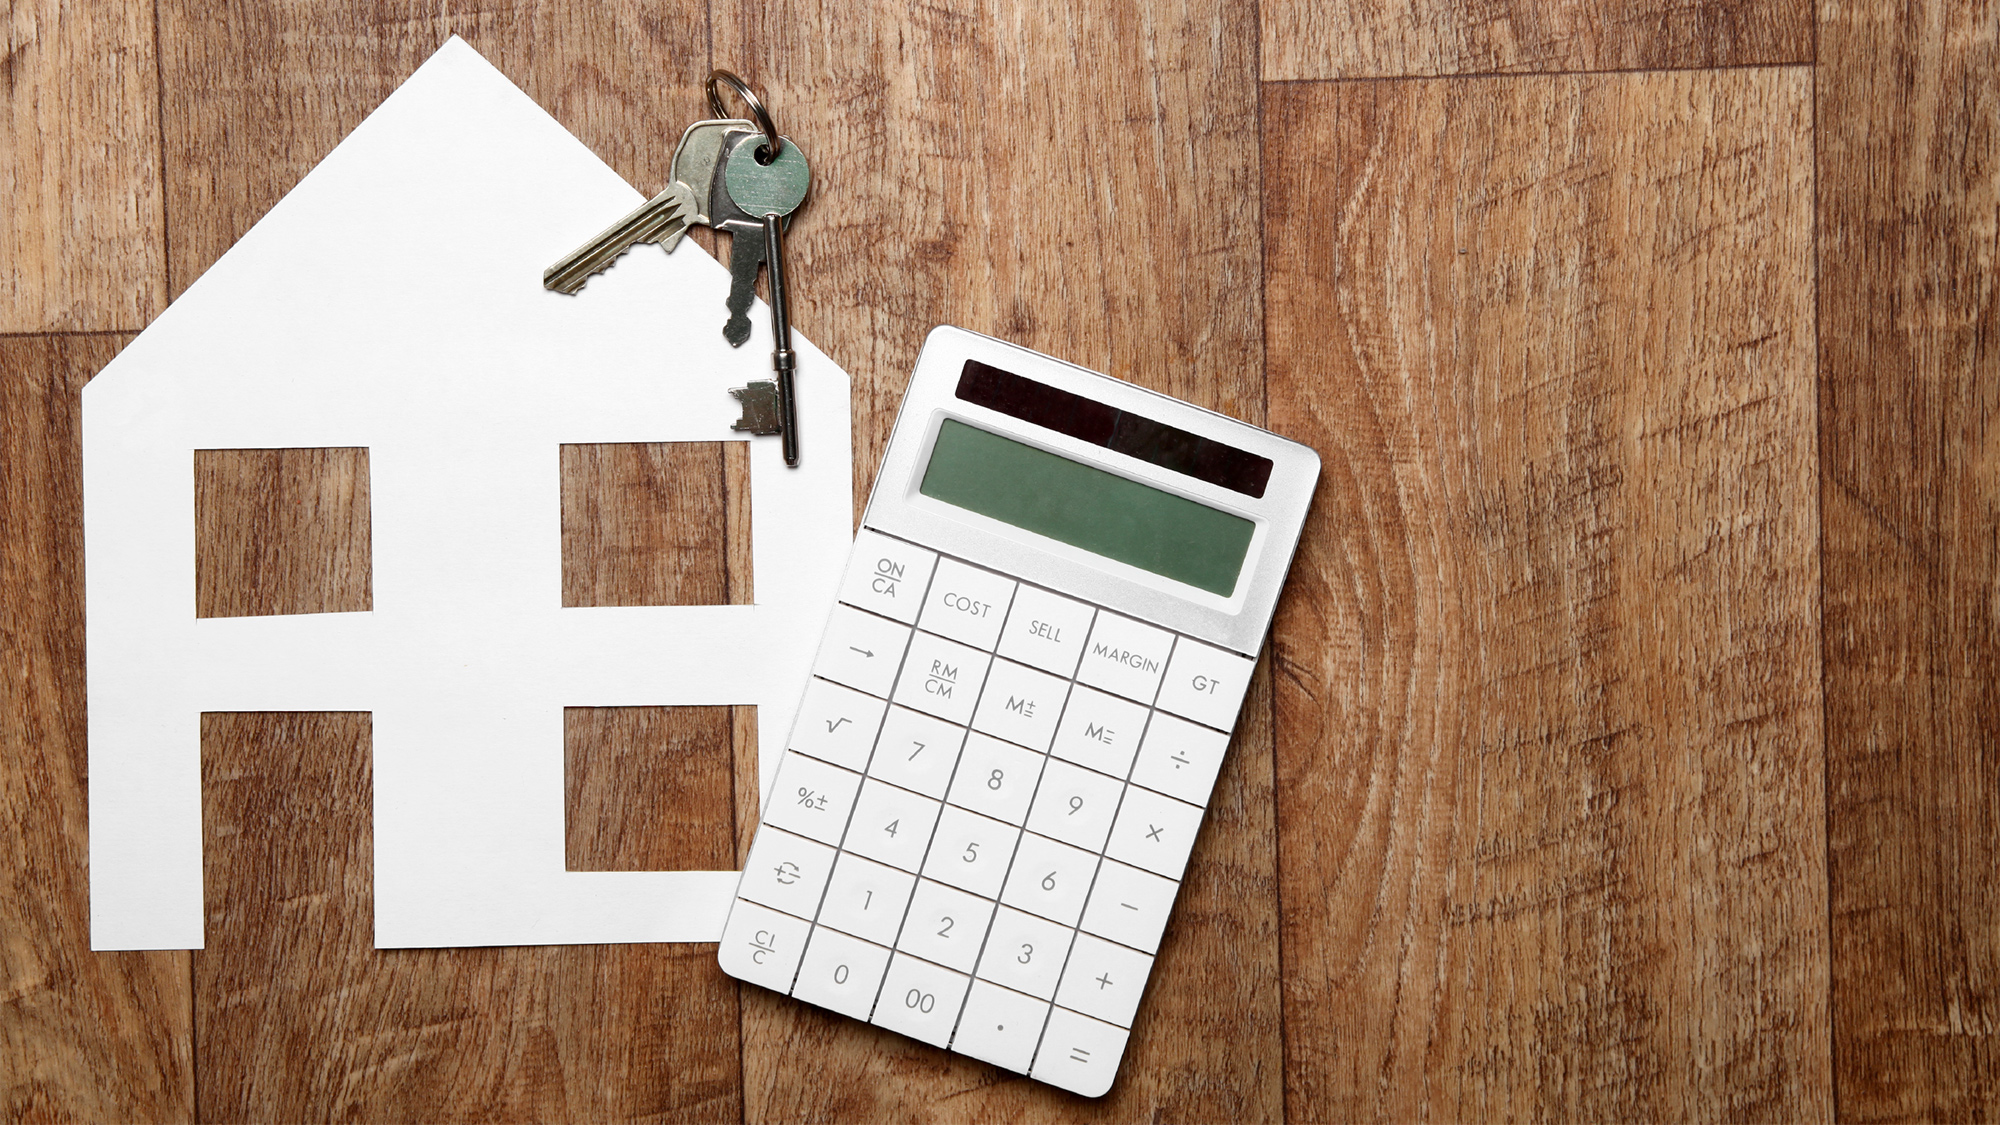 8 Critical Things to Do Before Buying a Home: How Many Have You Done?